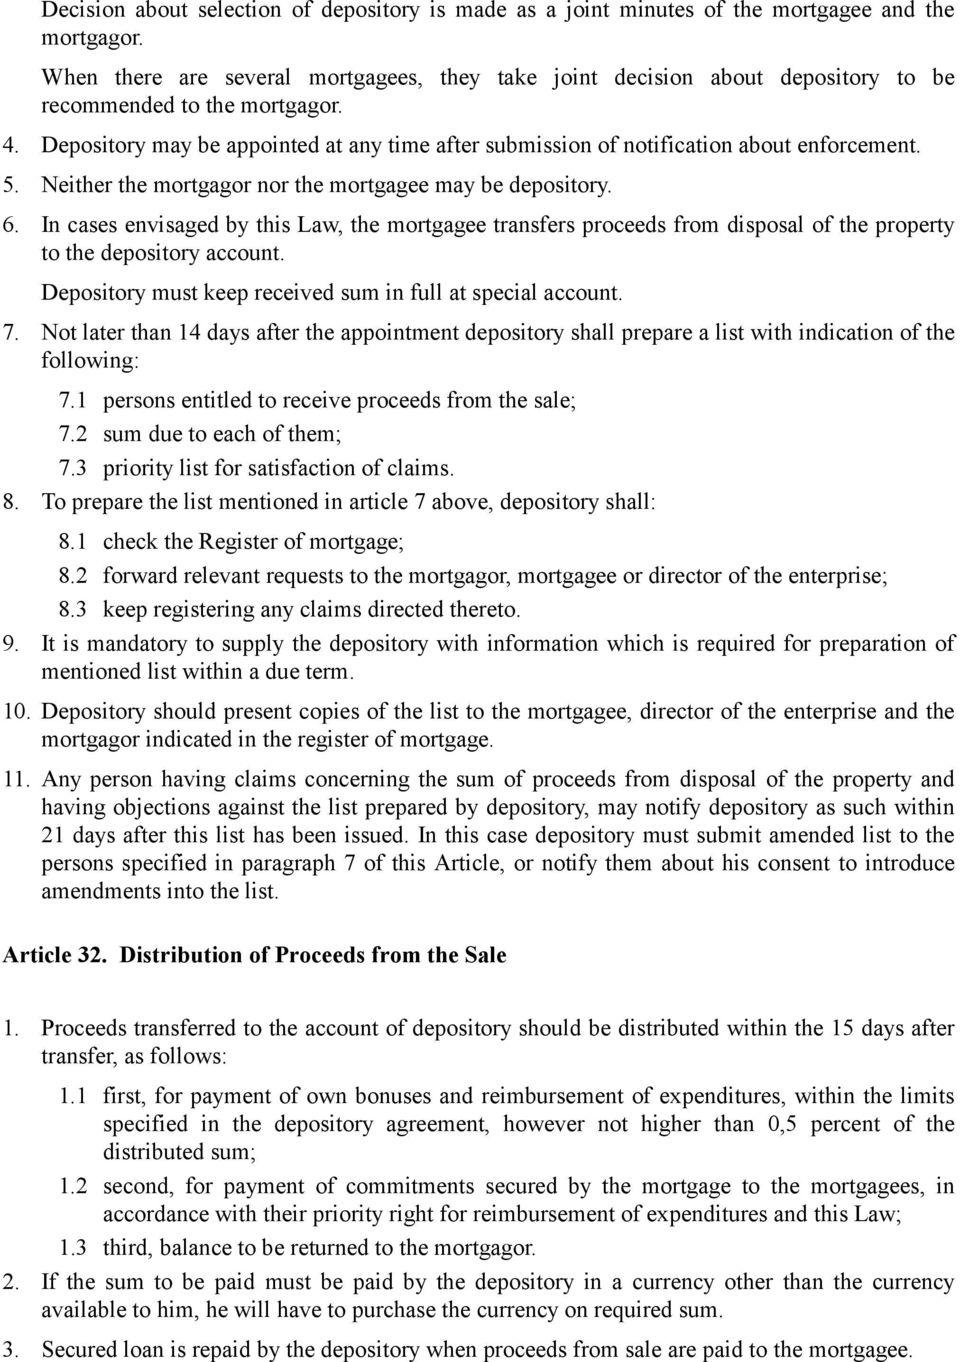 Depository may be appointed at any time after submission of notification about enforcement. 5. Neither the mortgagor nor the mortgagee may be depository. 6.